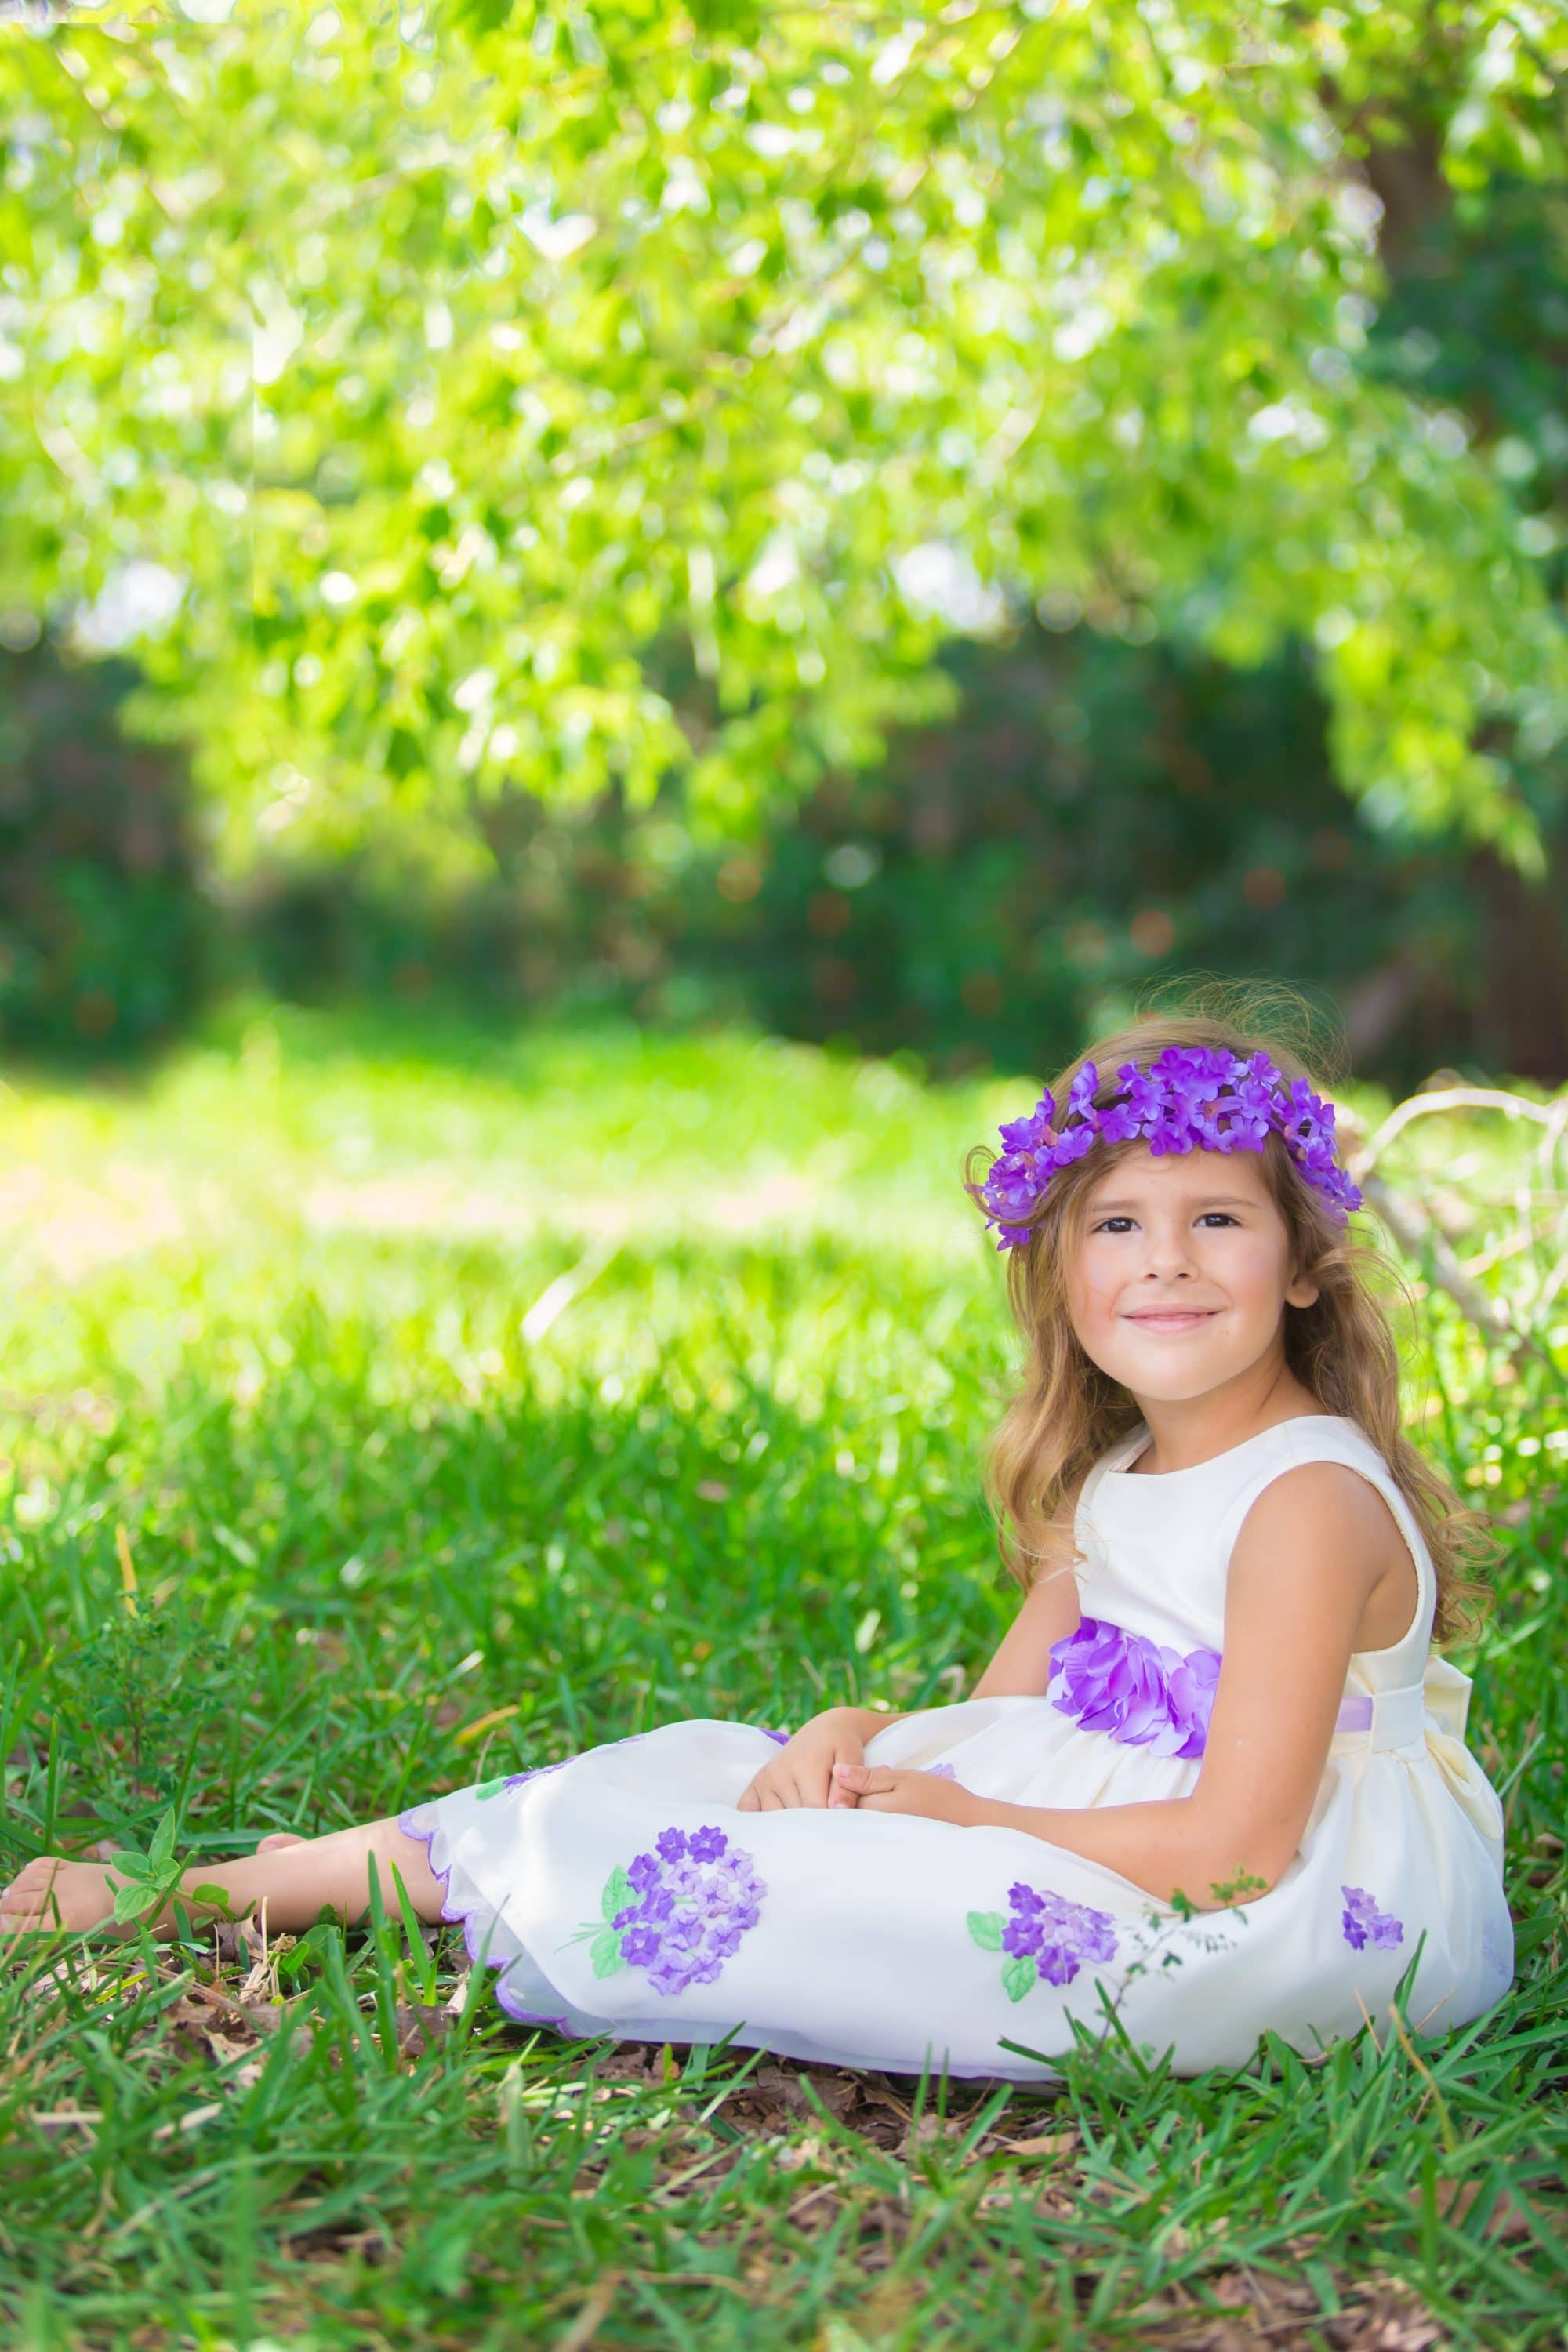 Orlando children photographer photographs a girl wearing a purple Easter dress for a spring family portrait session.